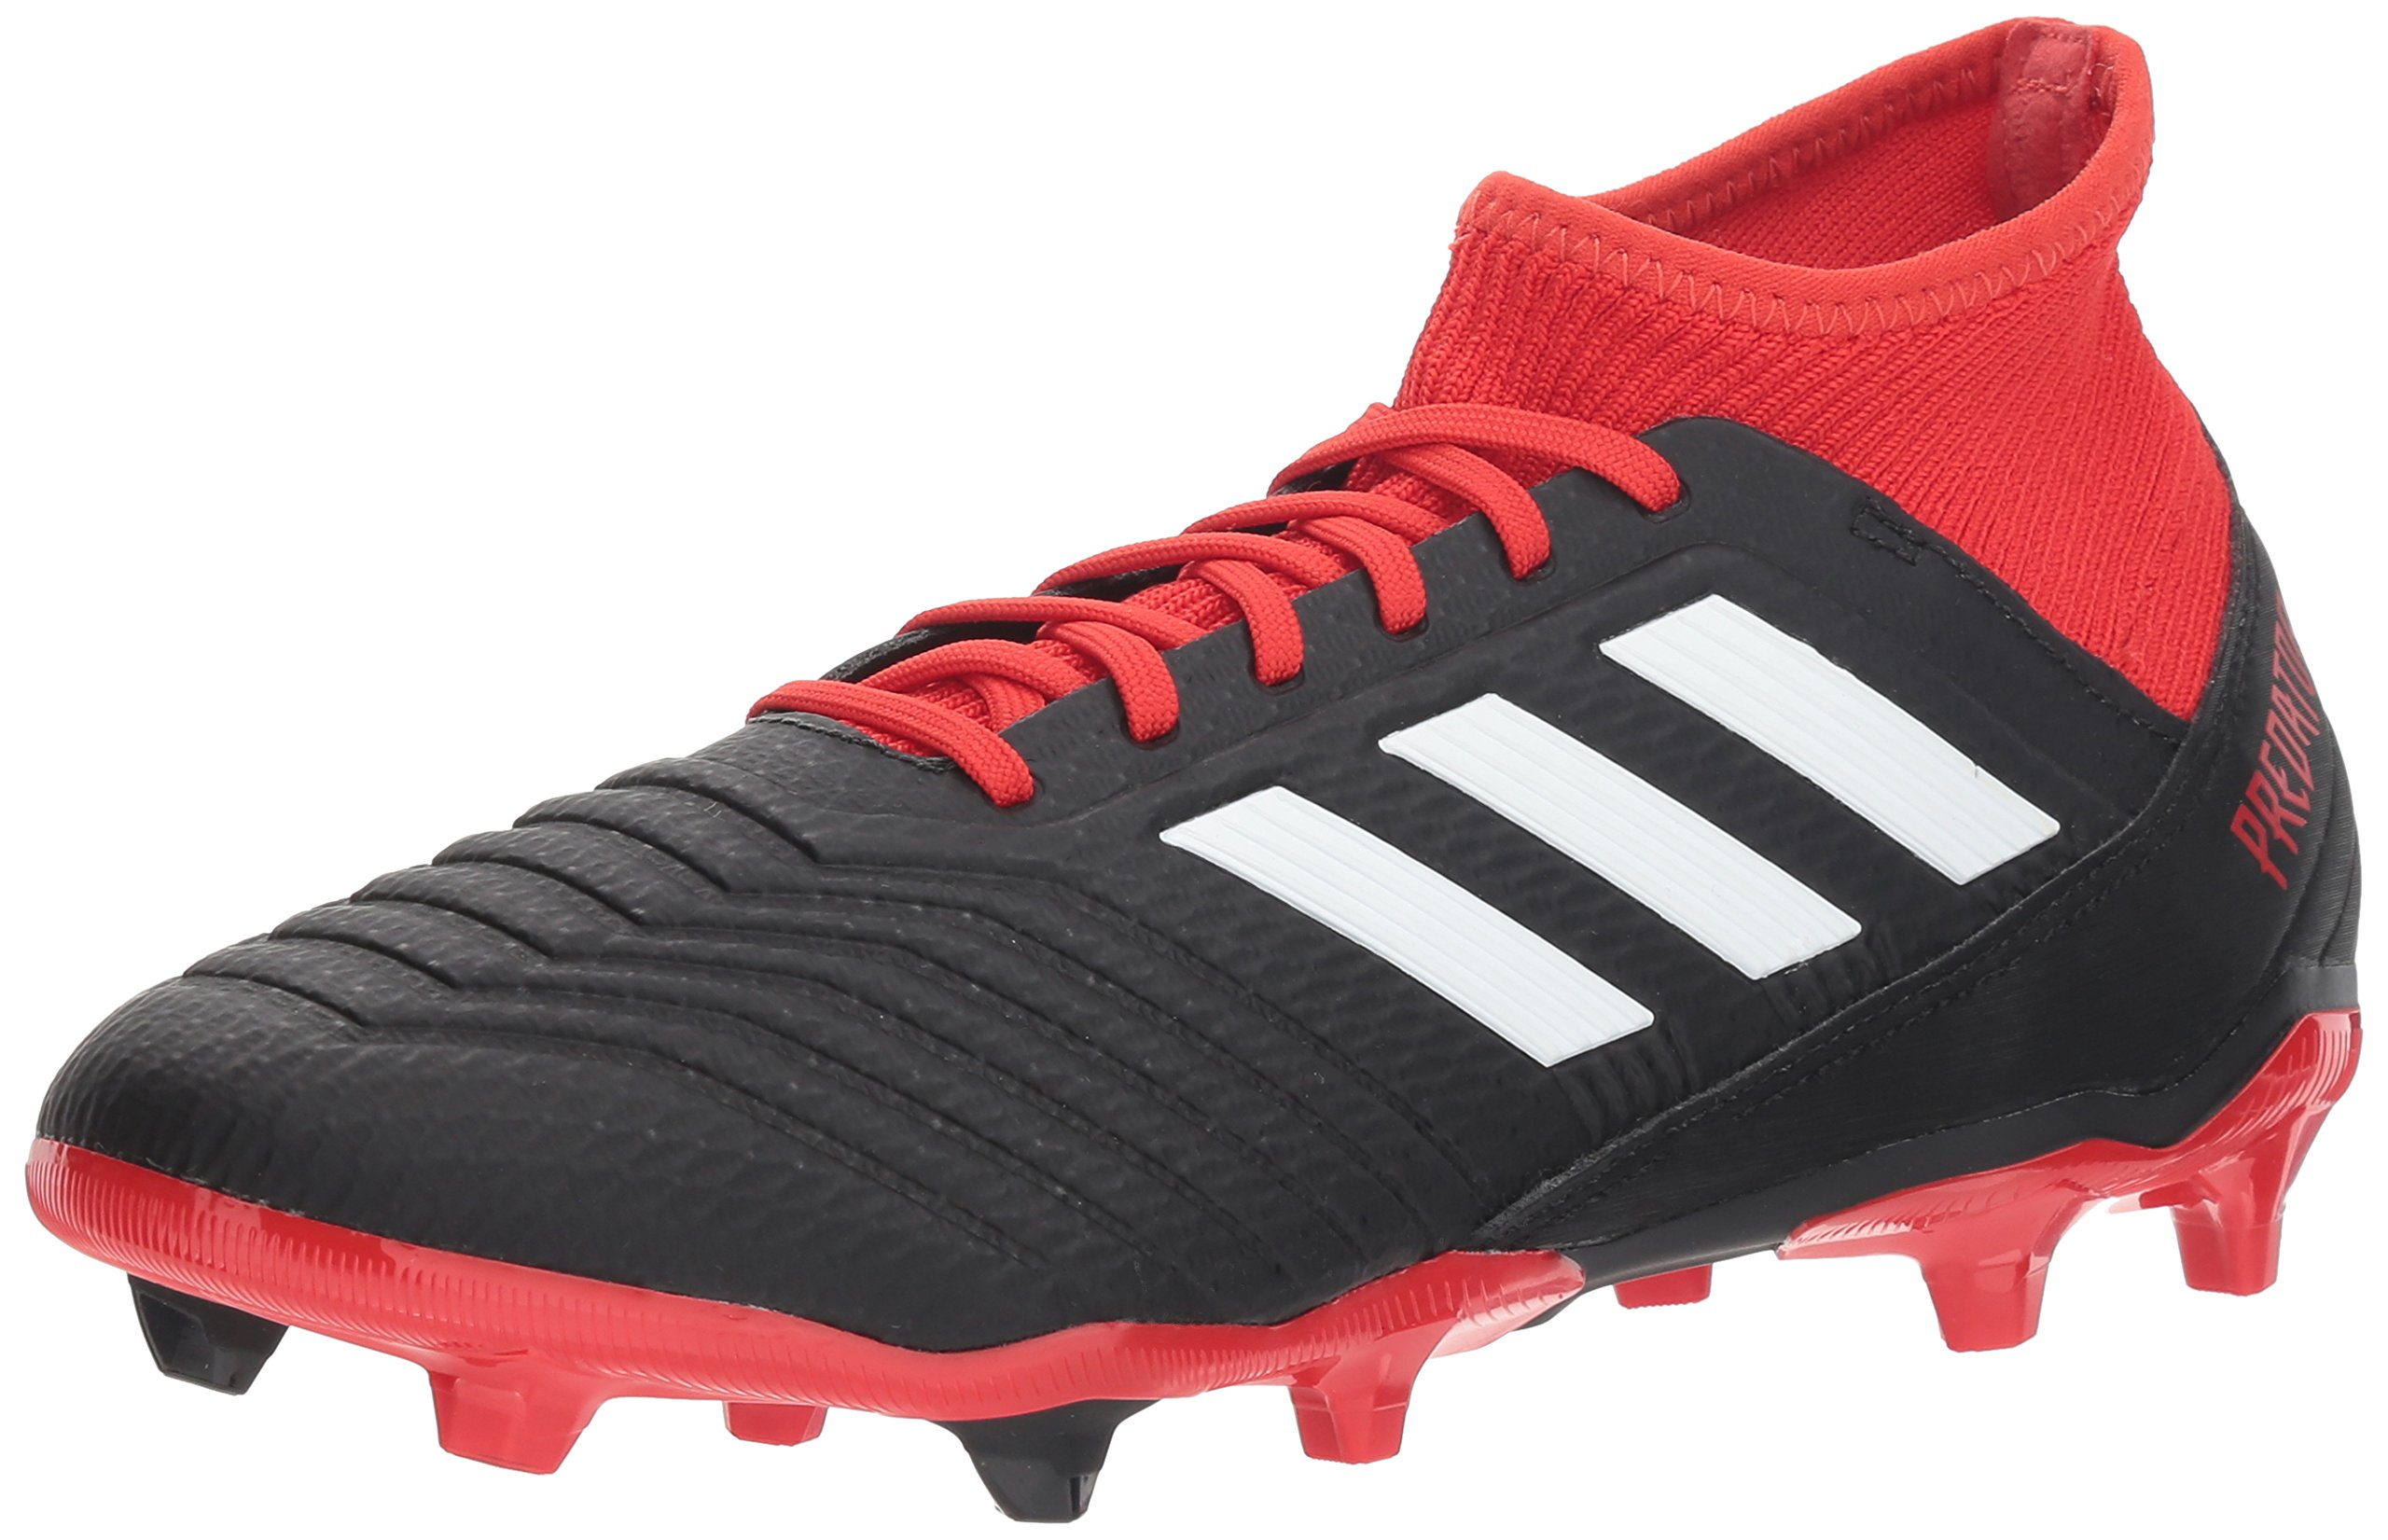 b86ac24be Galleon - Adidas Men s Predator 18.3 Firm Ground Soccer Shoe